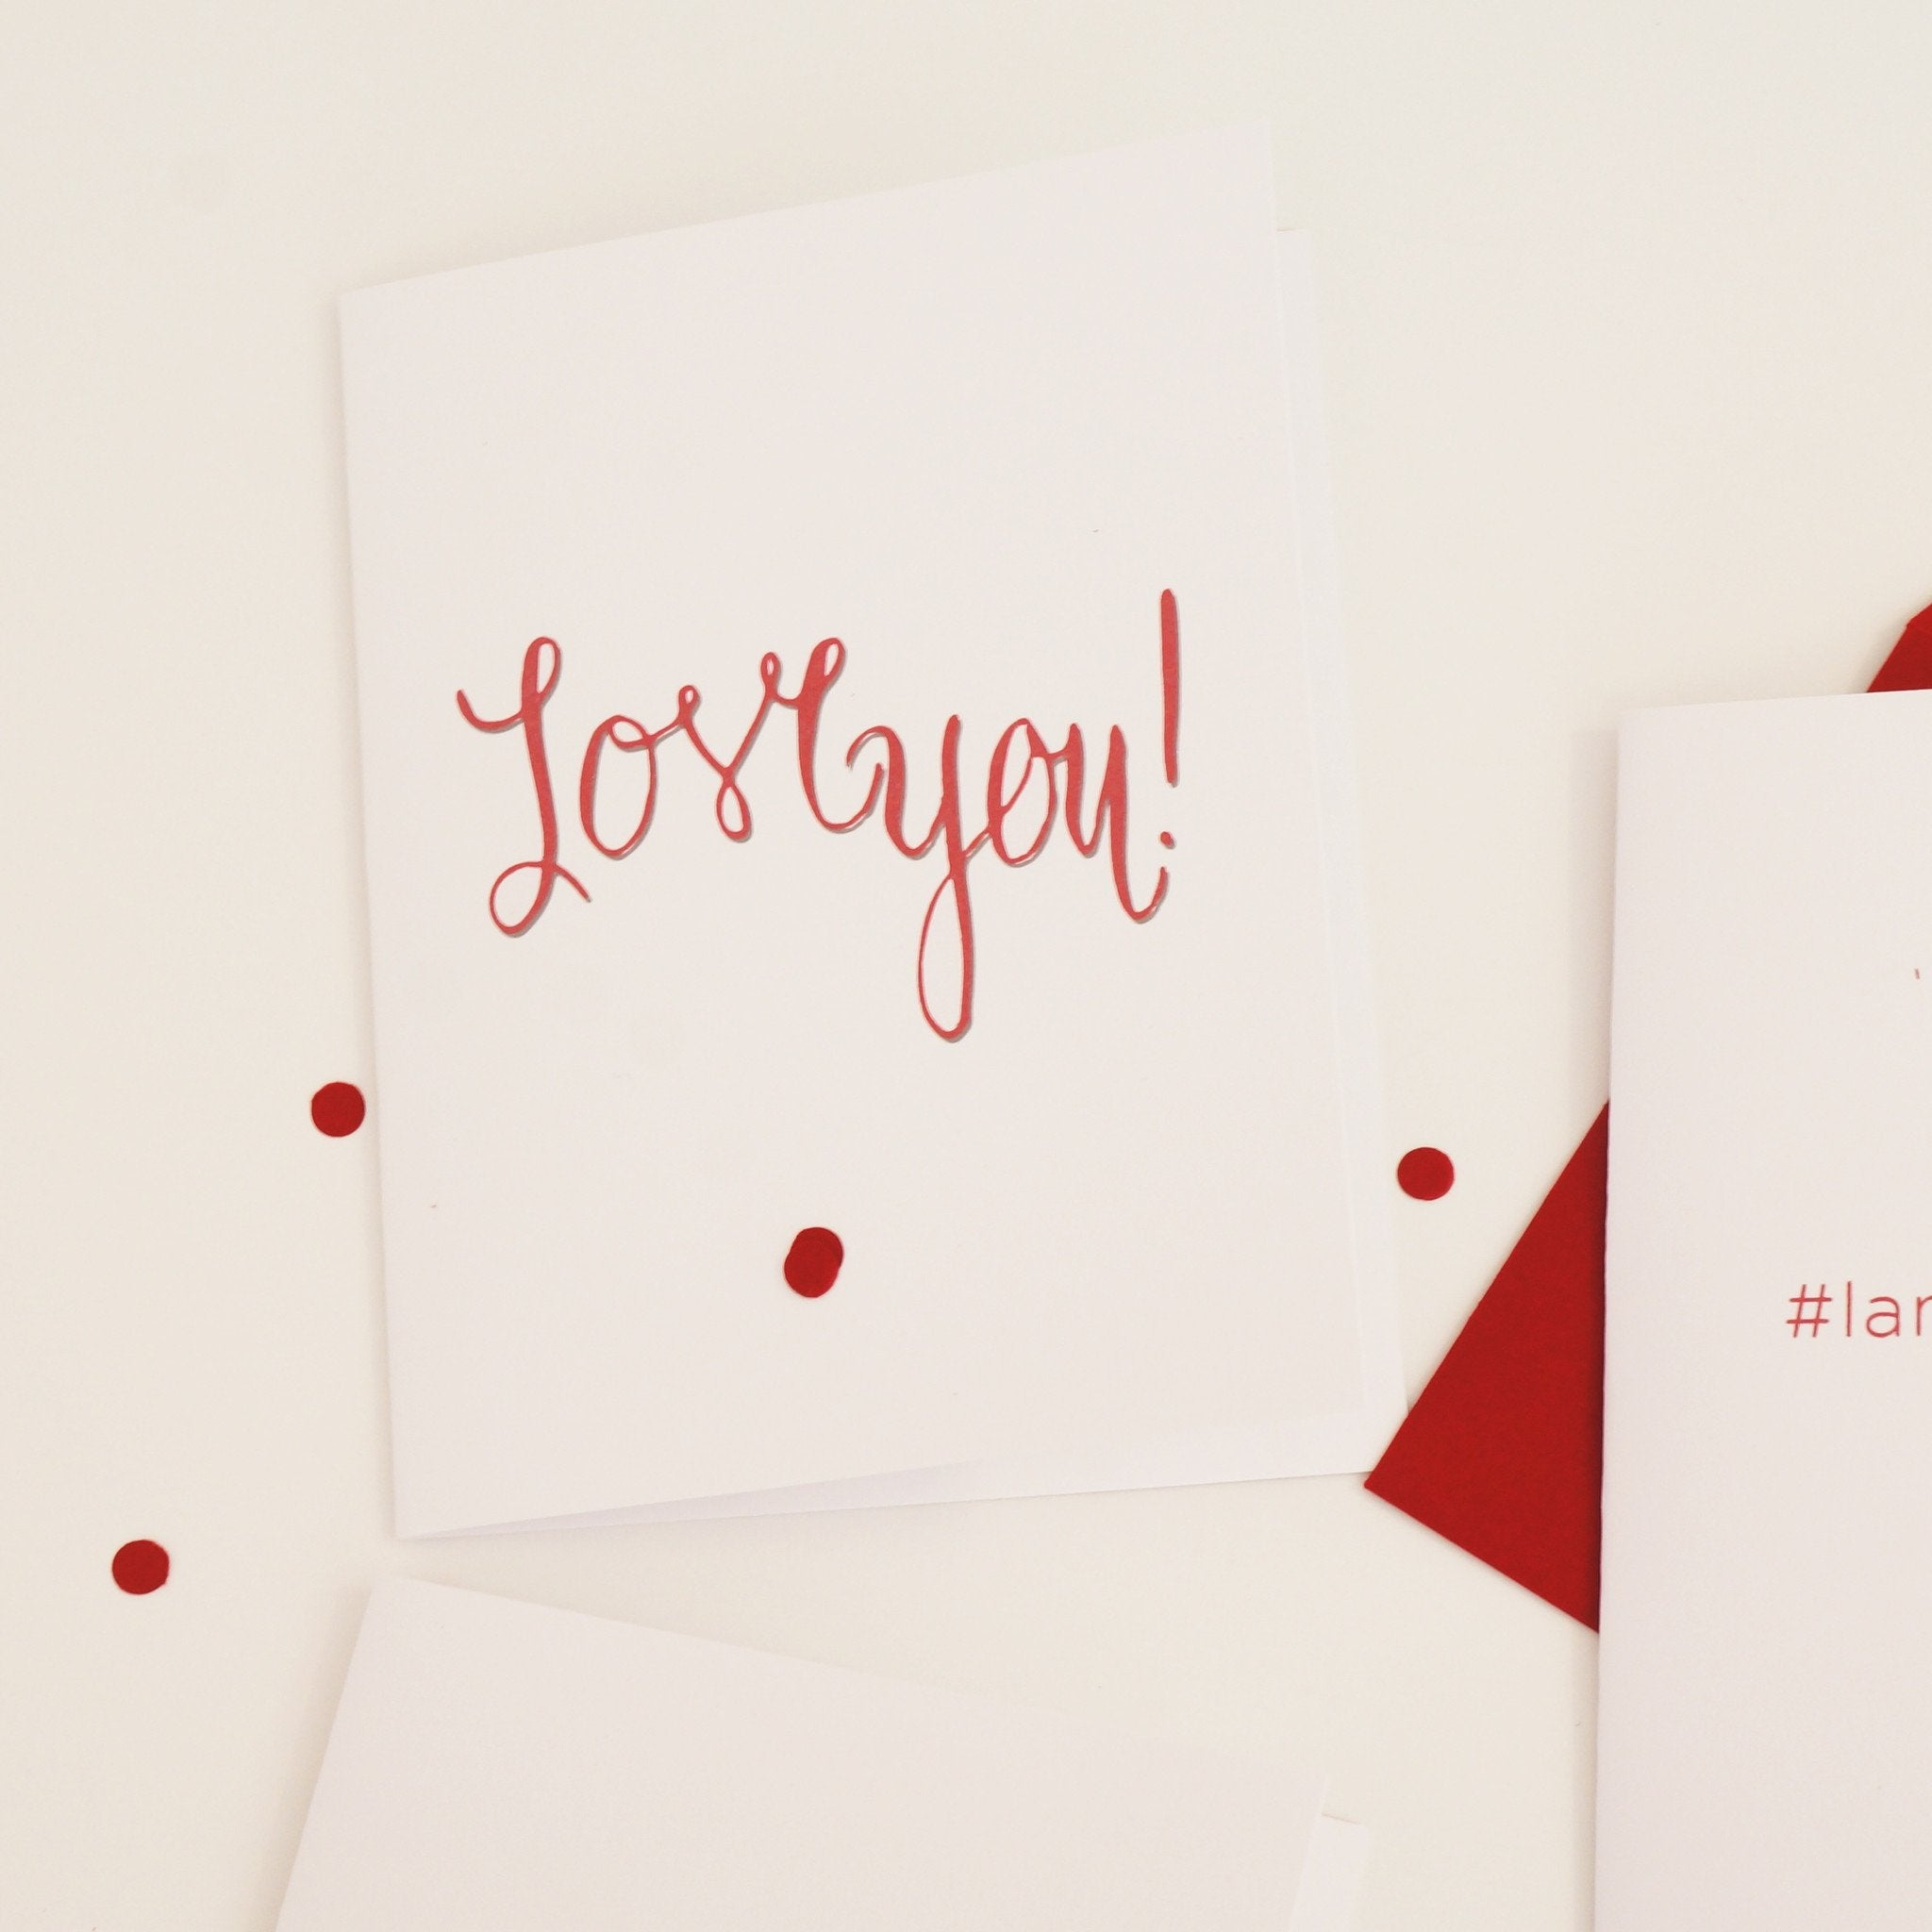 Love You Sweet Valentine's Day Card - shop greeting cards, handmade stationery, & wedding invitations by dodeline design - 1